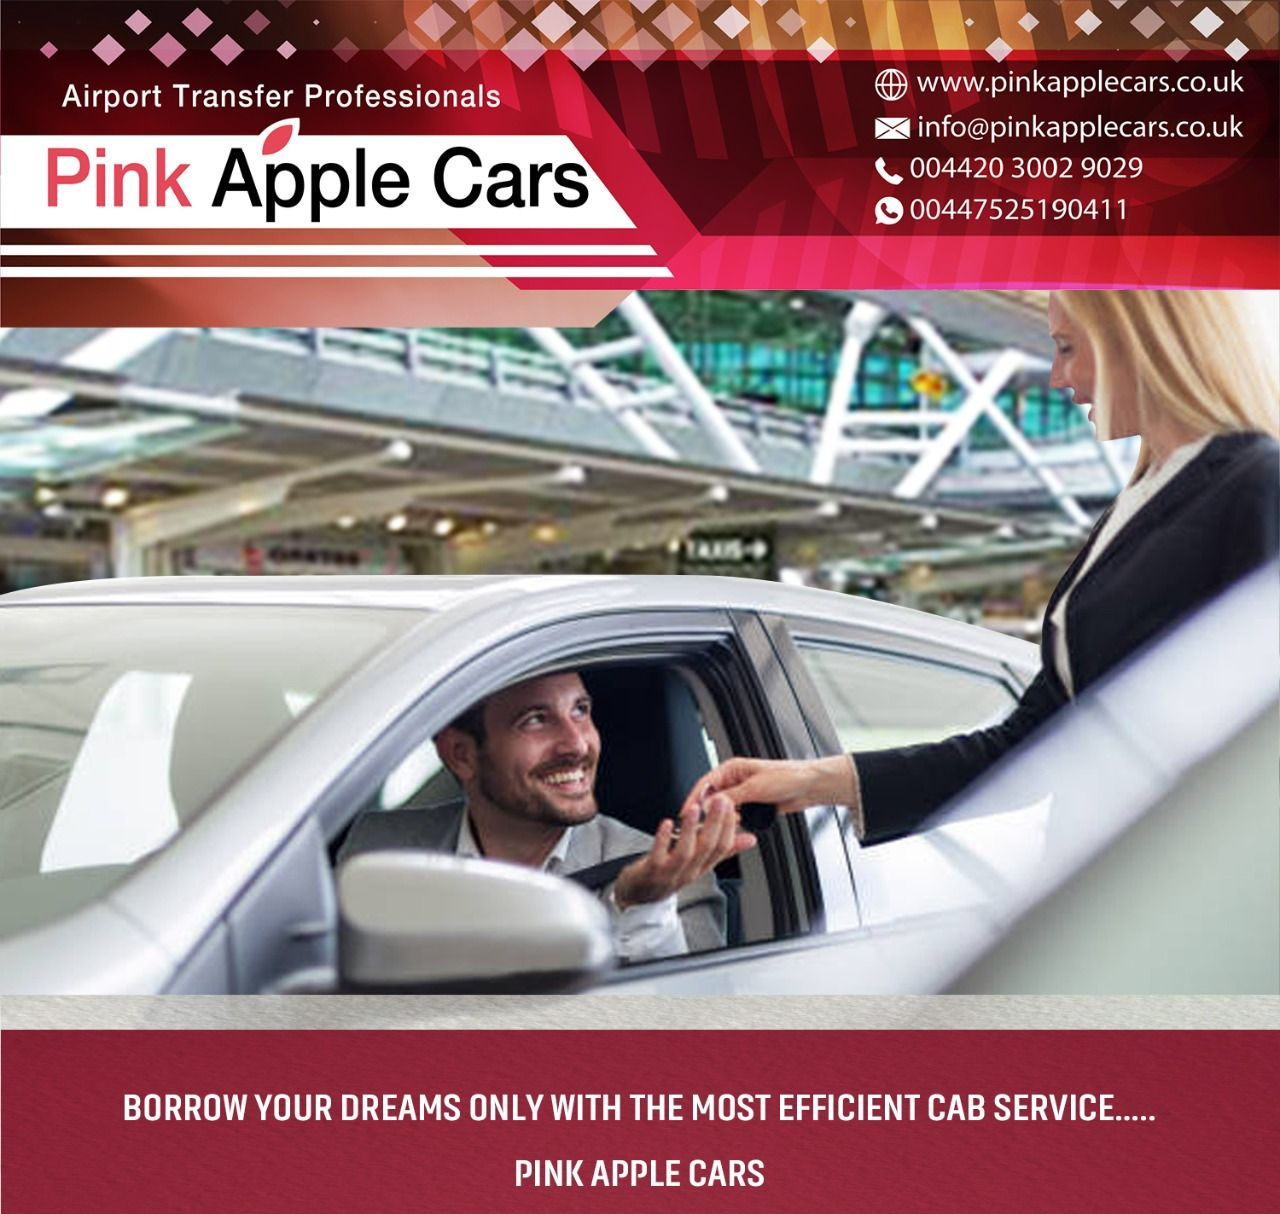 Pin by Pink Apple Cars on London Airport taxi service in